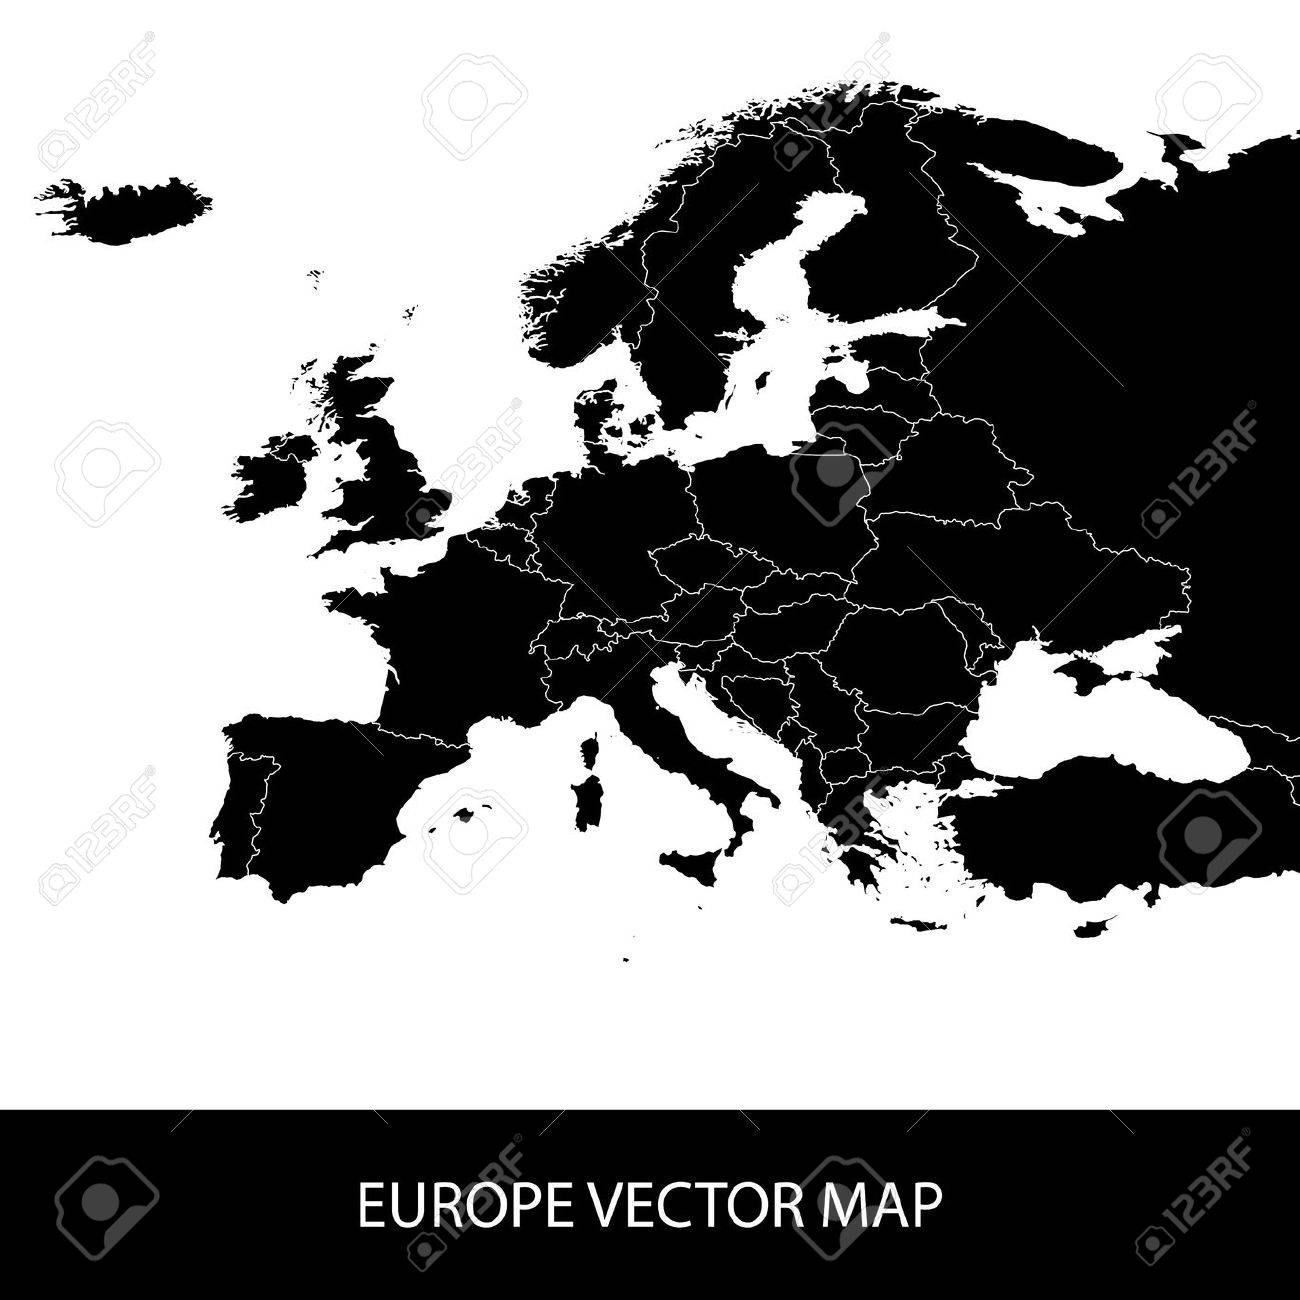 Europe Vector Map - 38787141